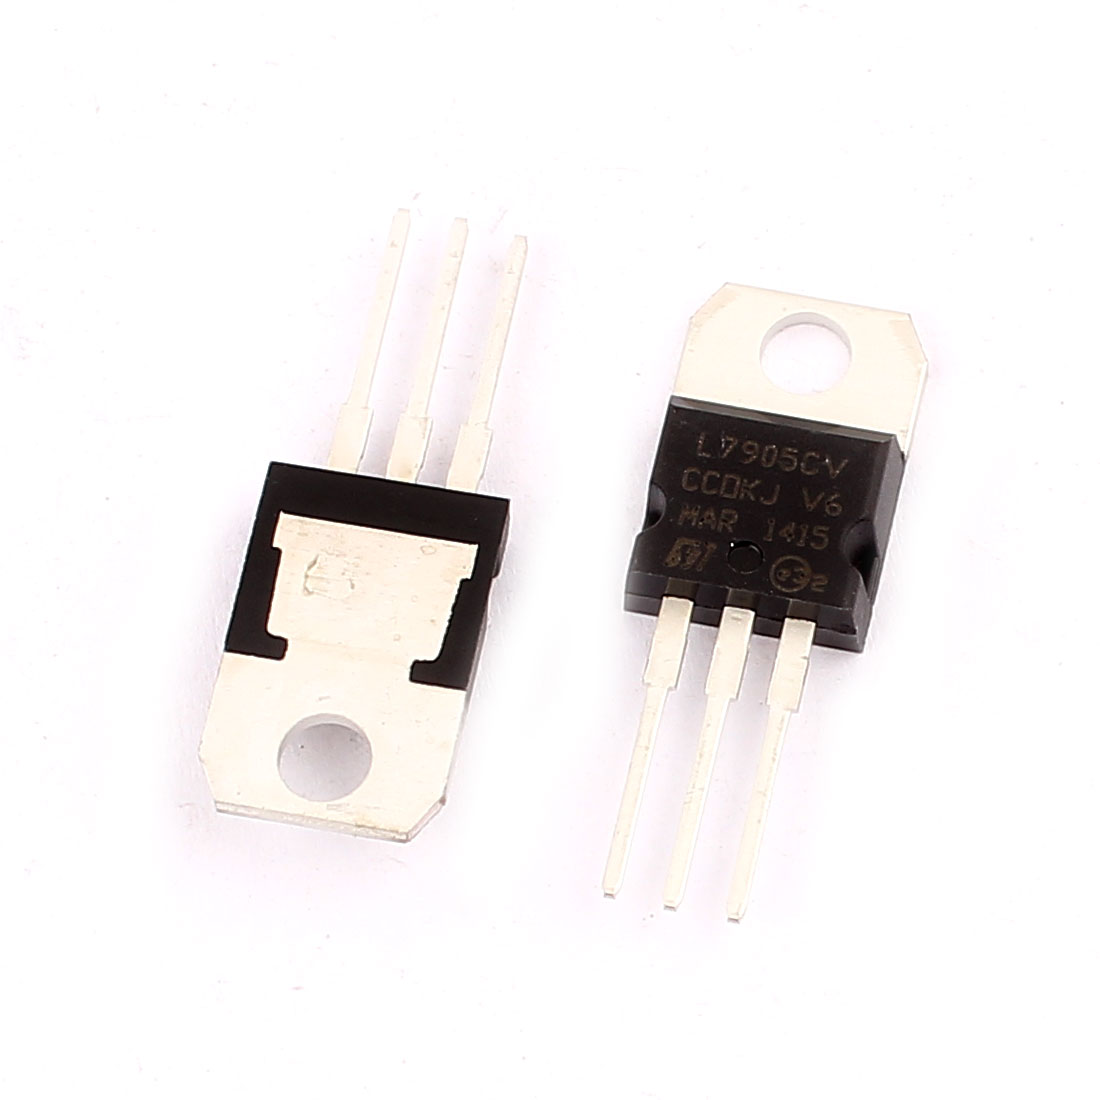 2 Pcs 5V 1A 3 Pin Terminals L7905CV Negative Voltage Regulator TO-220